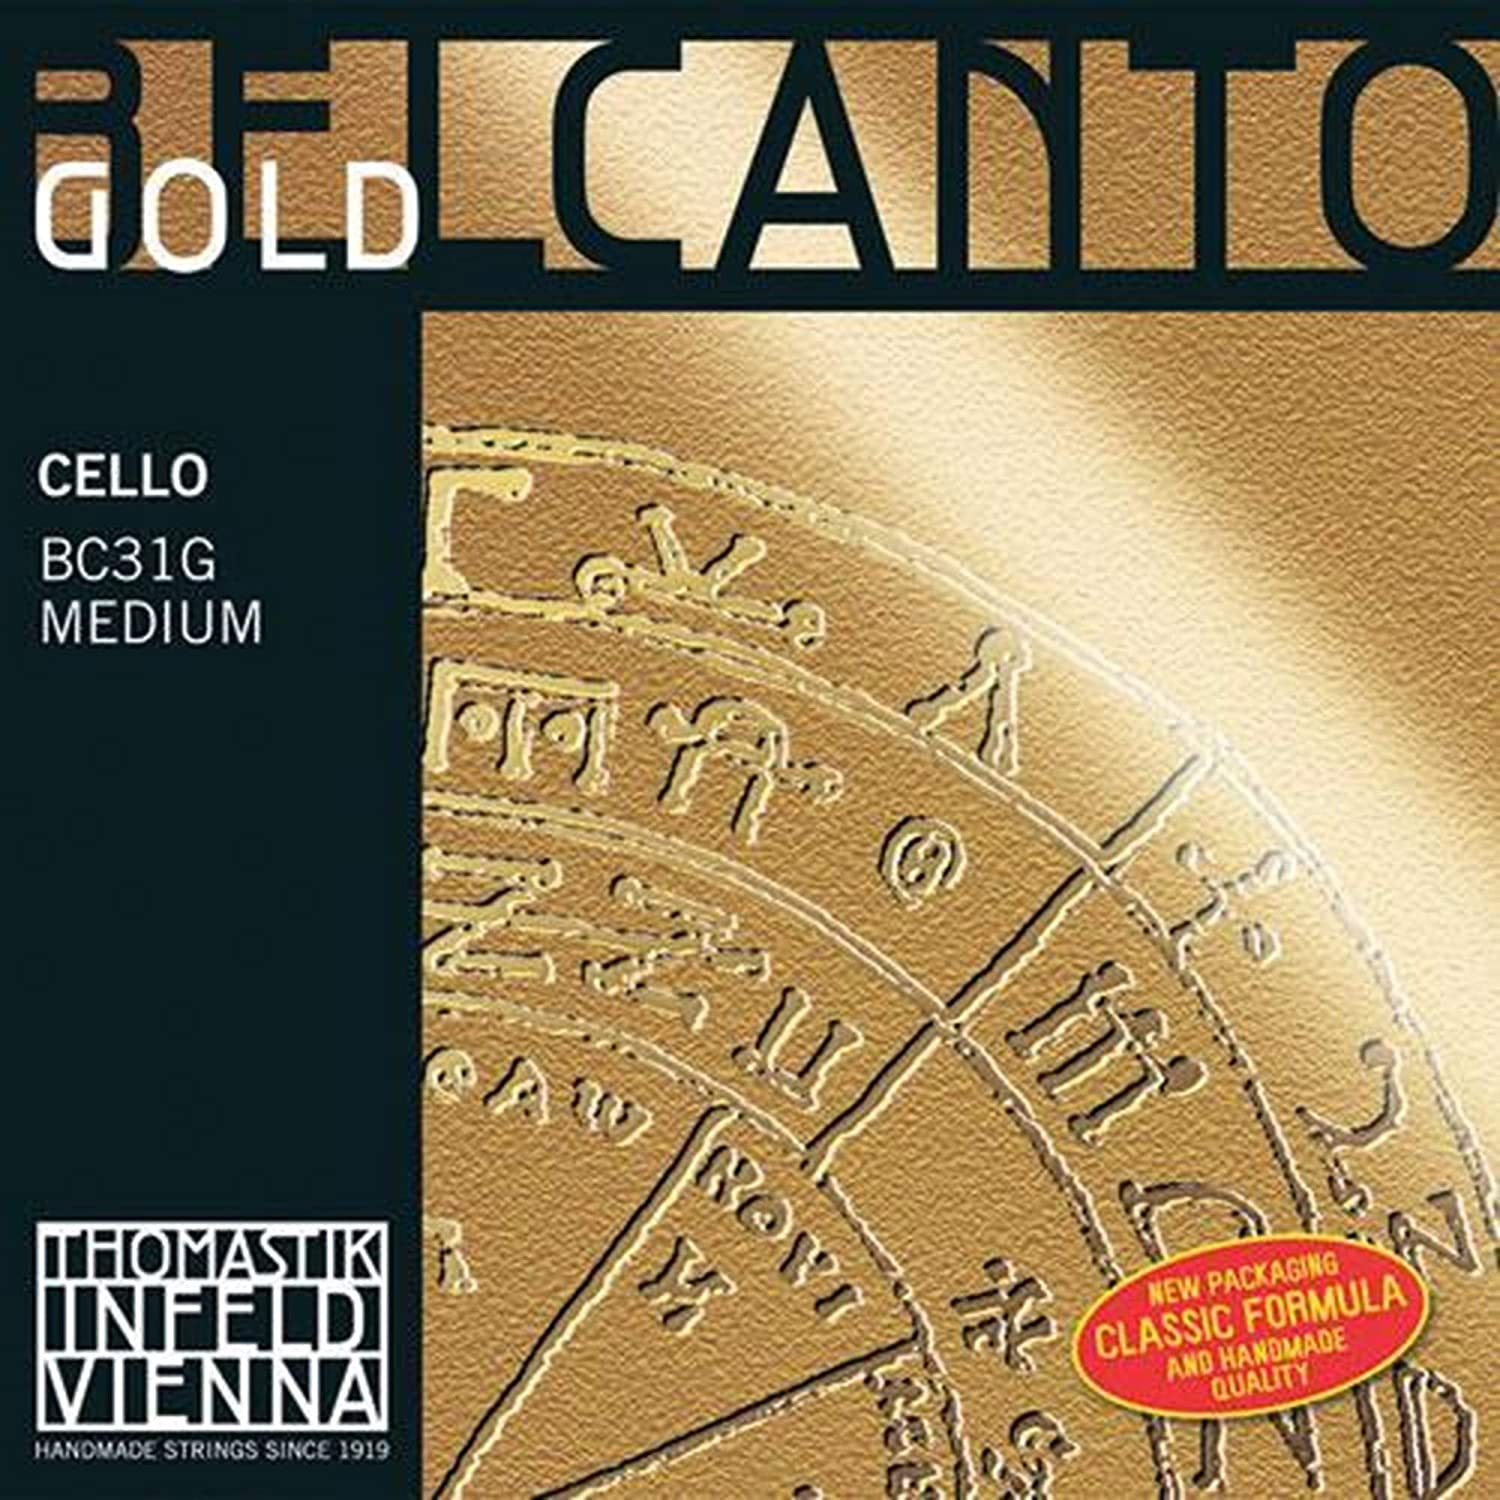 Thomastik-Infeld Cello BC28G Strings Over item handling Special Campaign